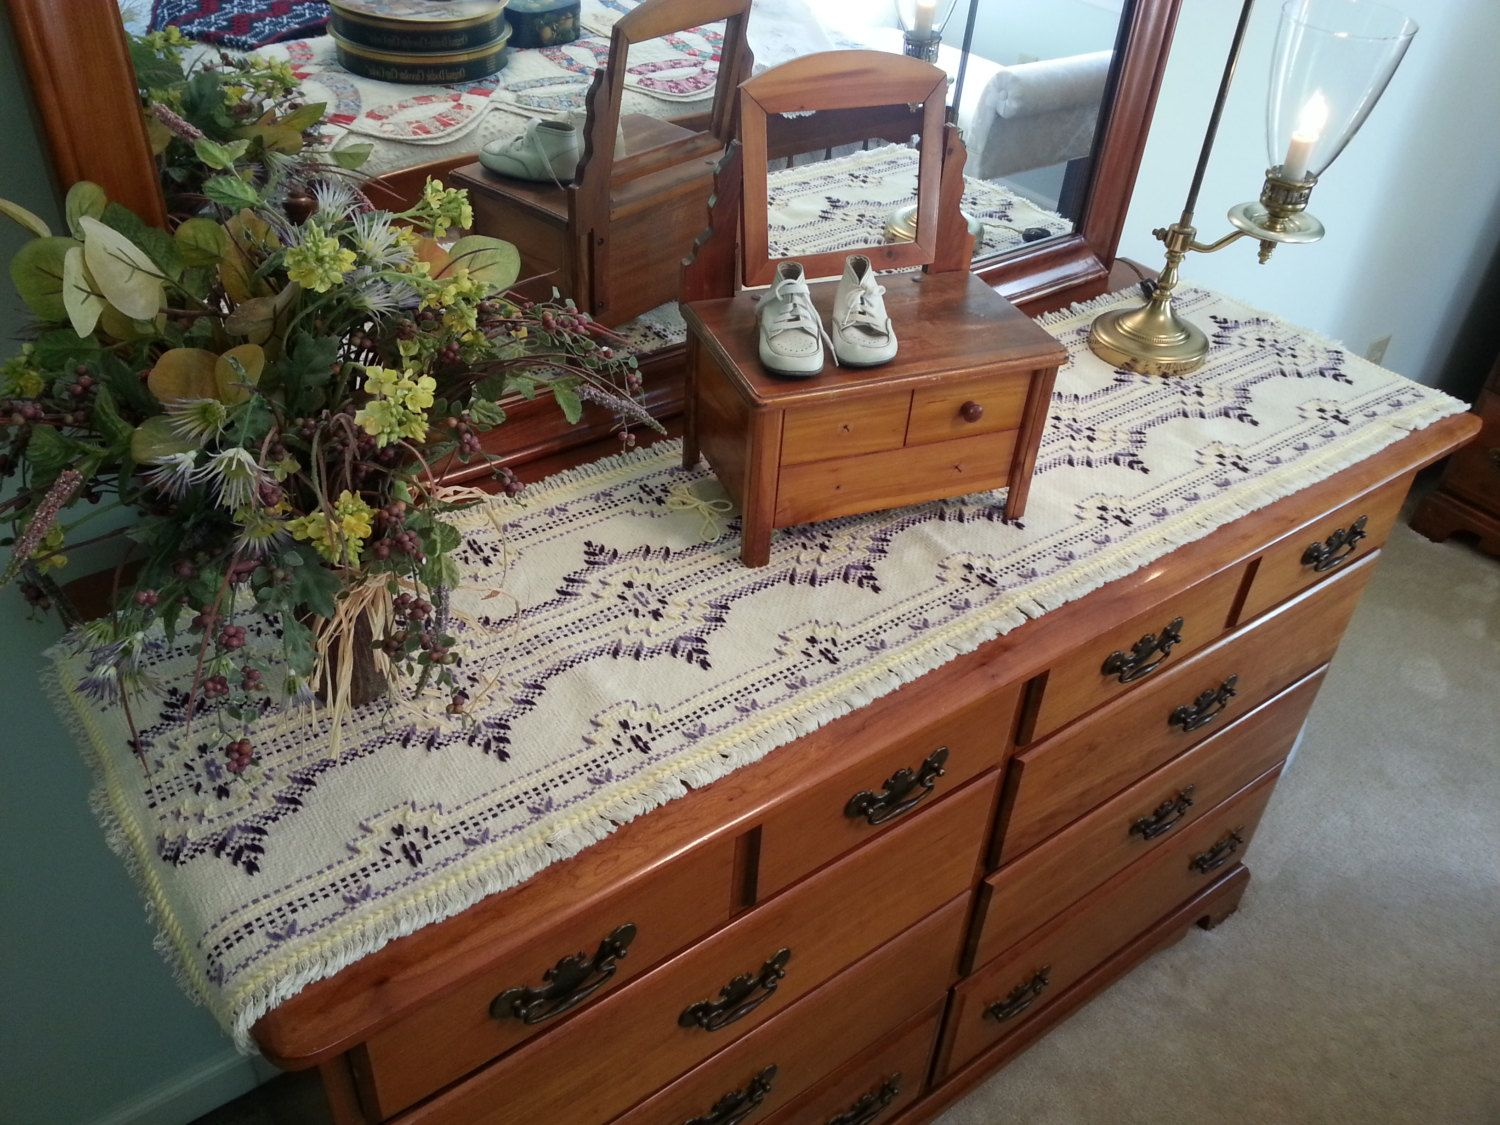 How To Make Dresser Runner From Patchwork Creatively